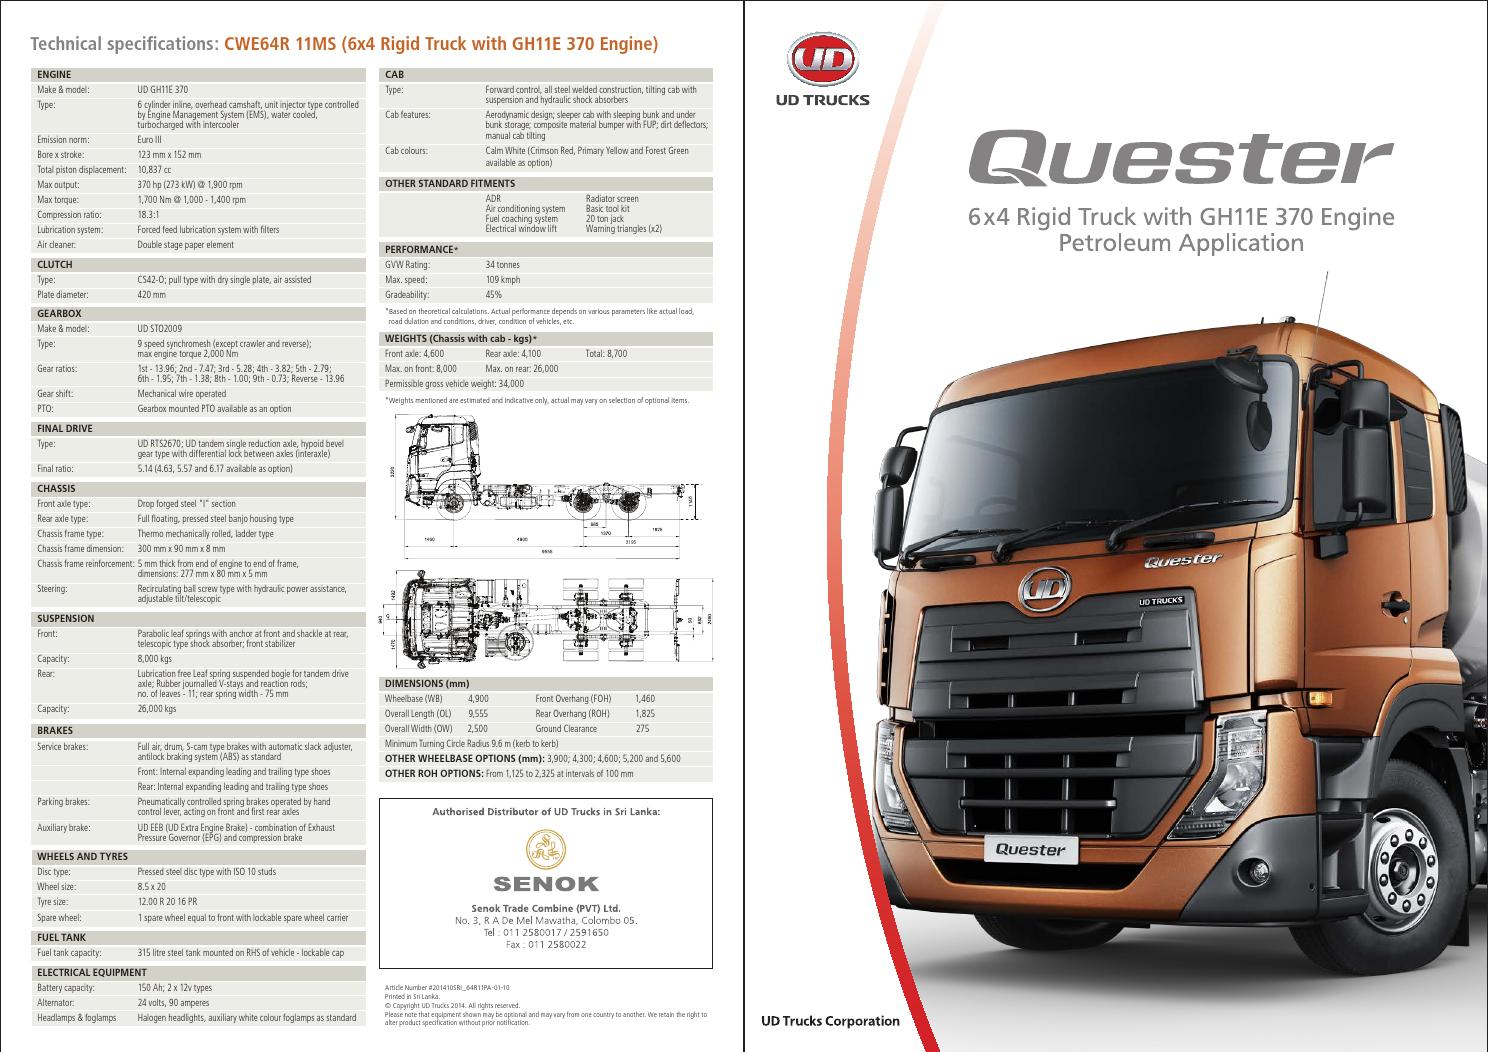 hight resolution of ud trucks wiring diagrams wiring diagram inside ud trucks diagram wiring